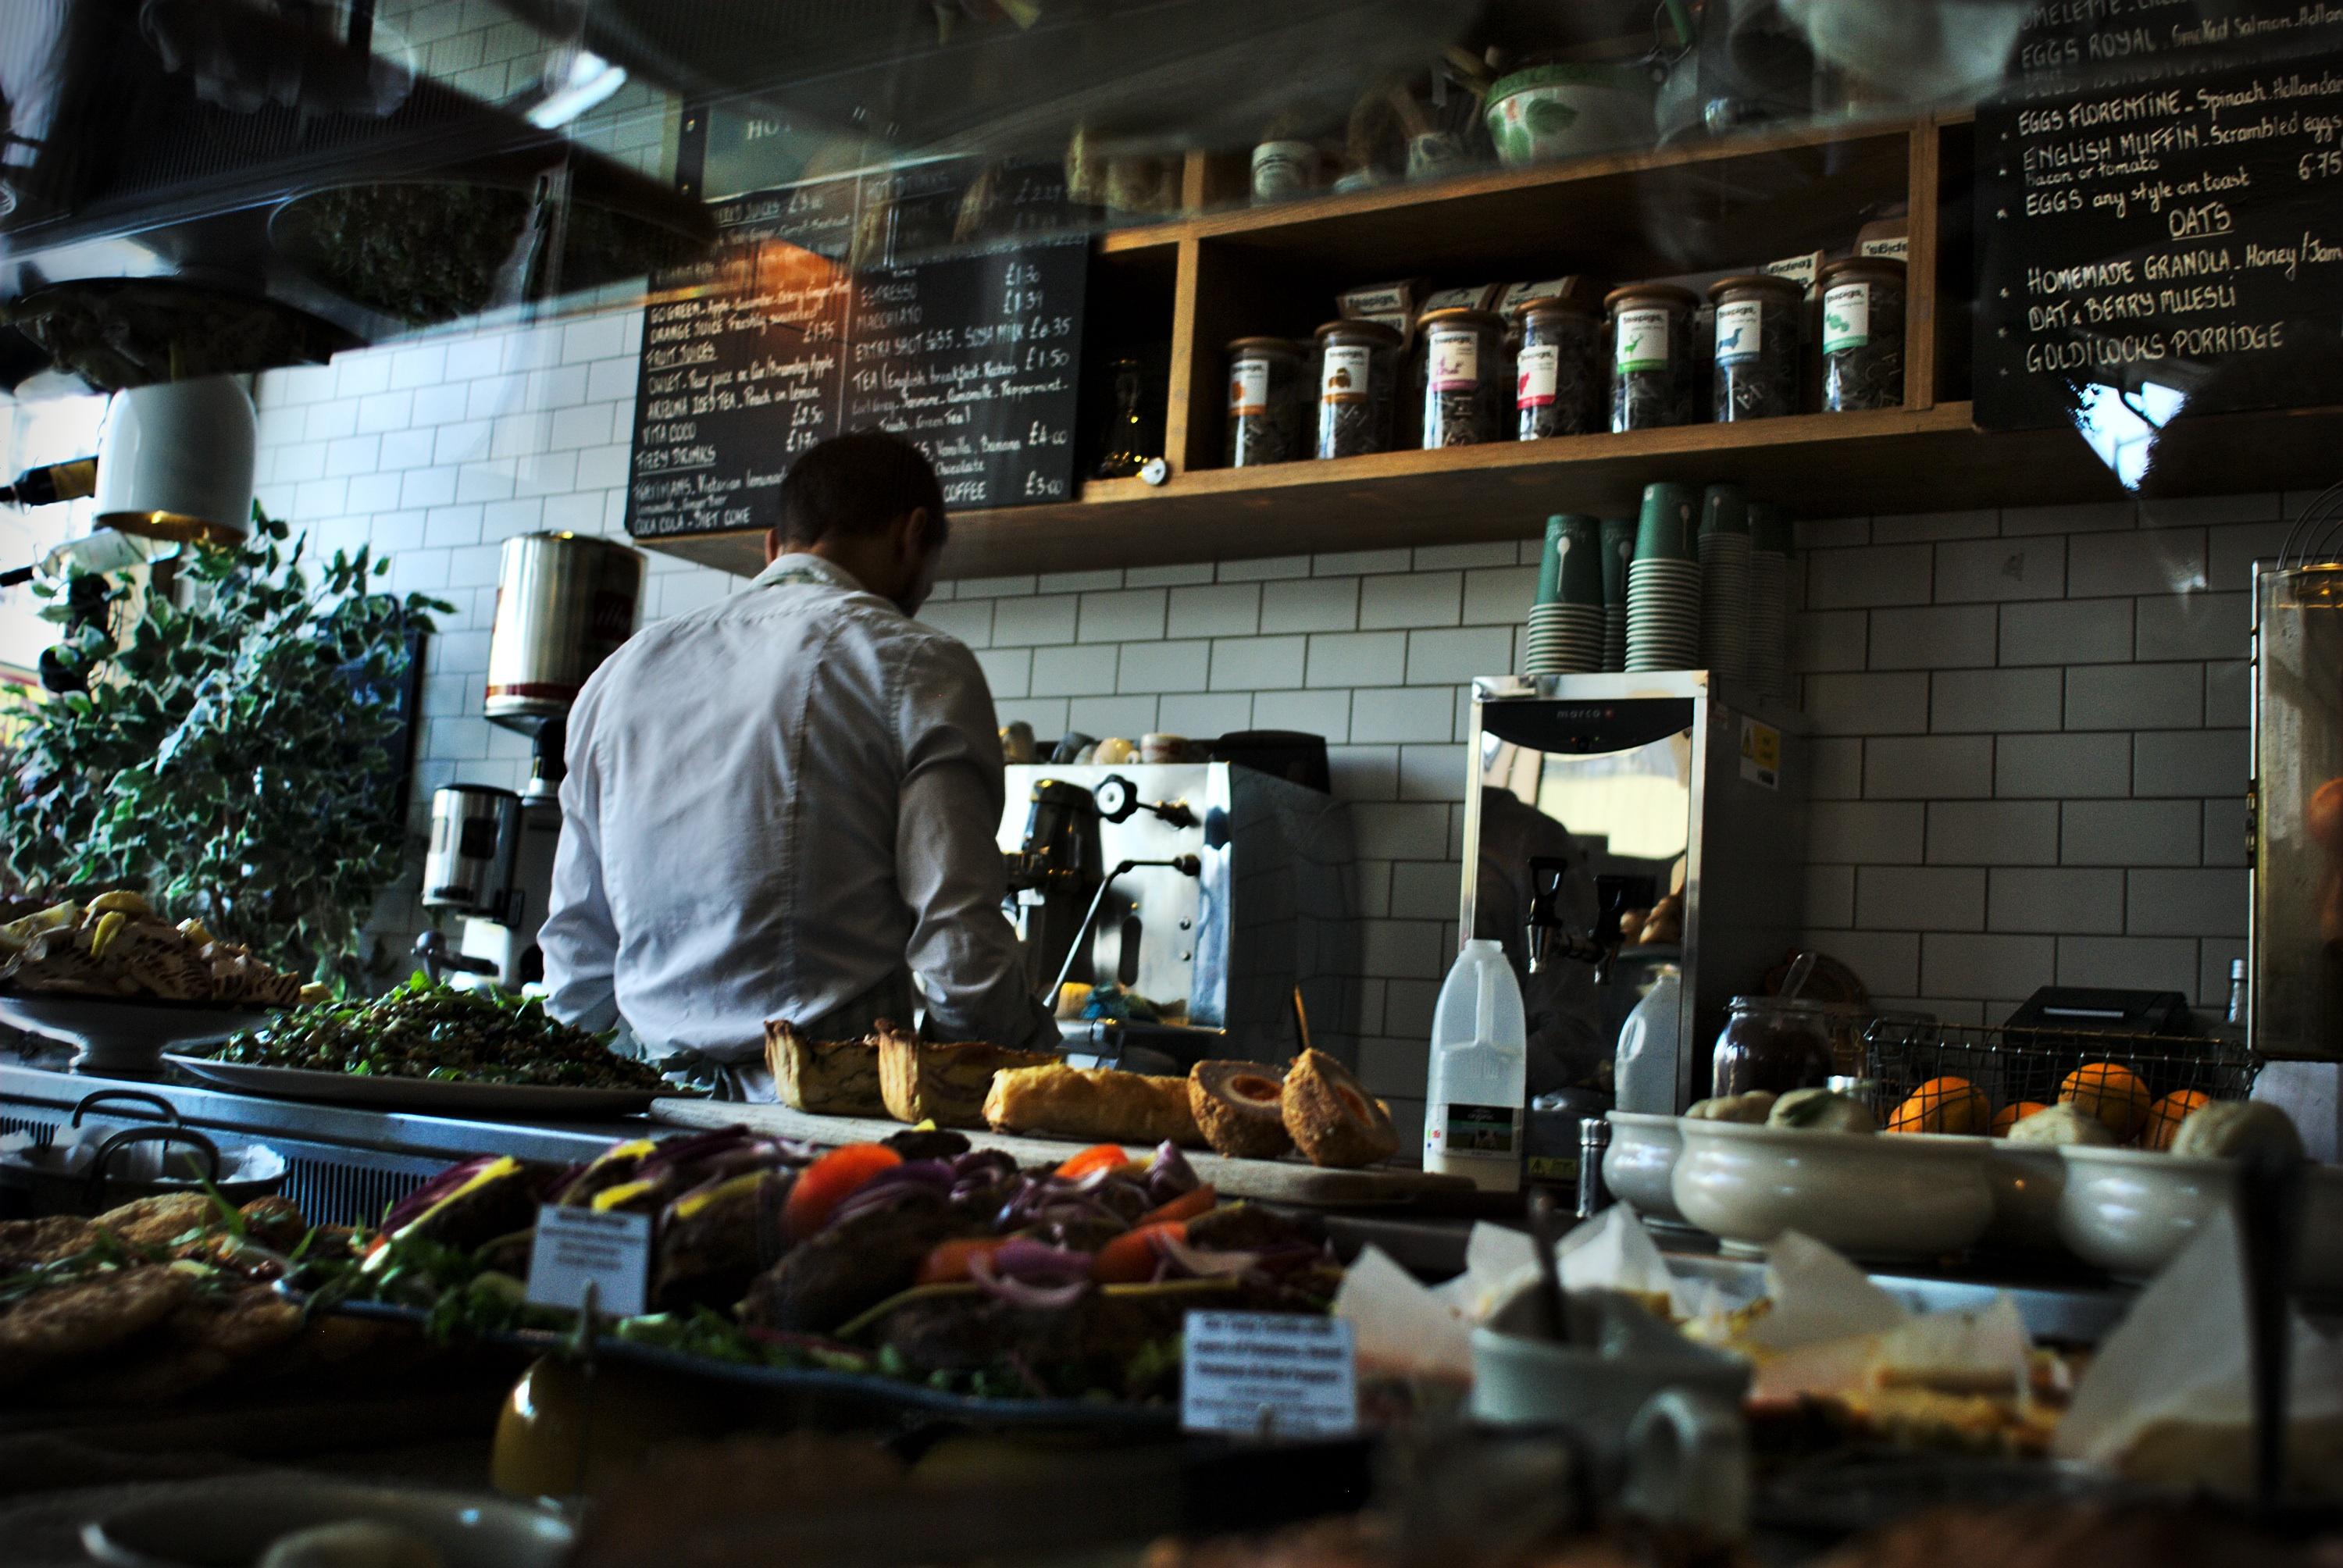 Think Cirrus/hospitality/coffee shop and barista